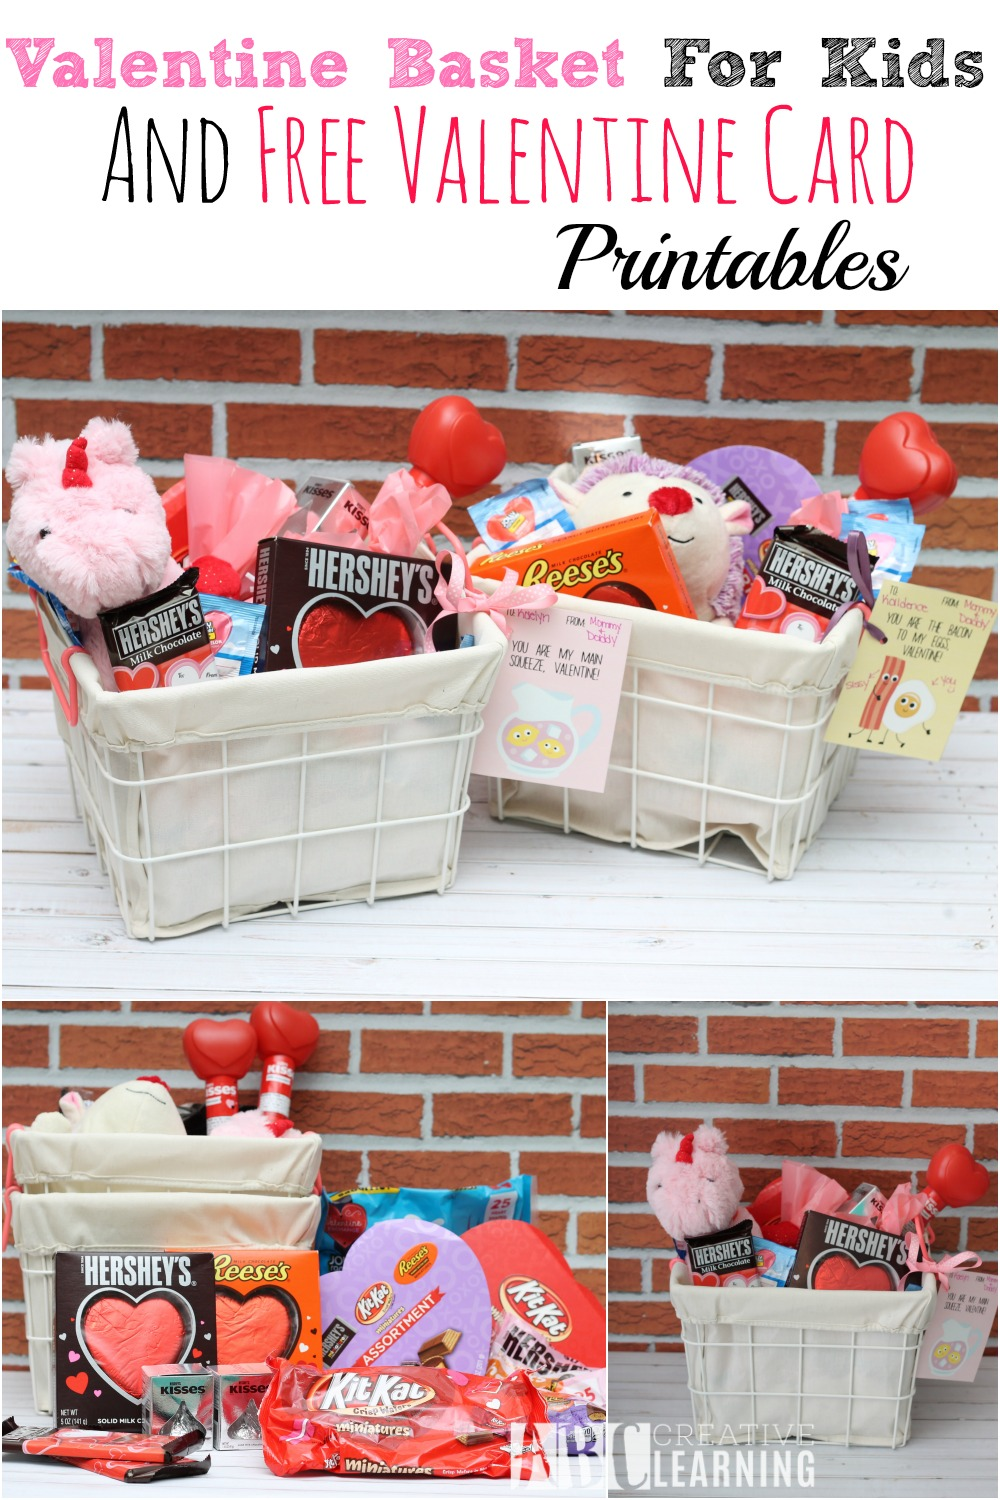 Valentines Day Free Cards Printables